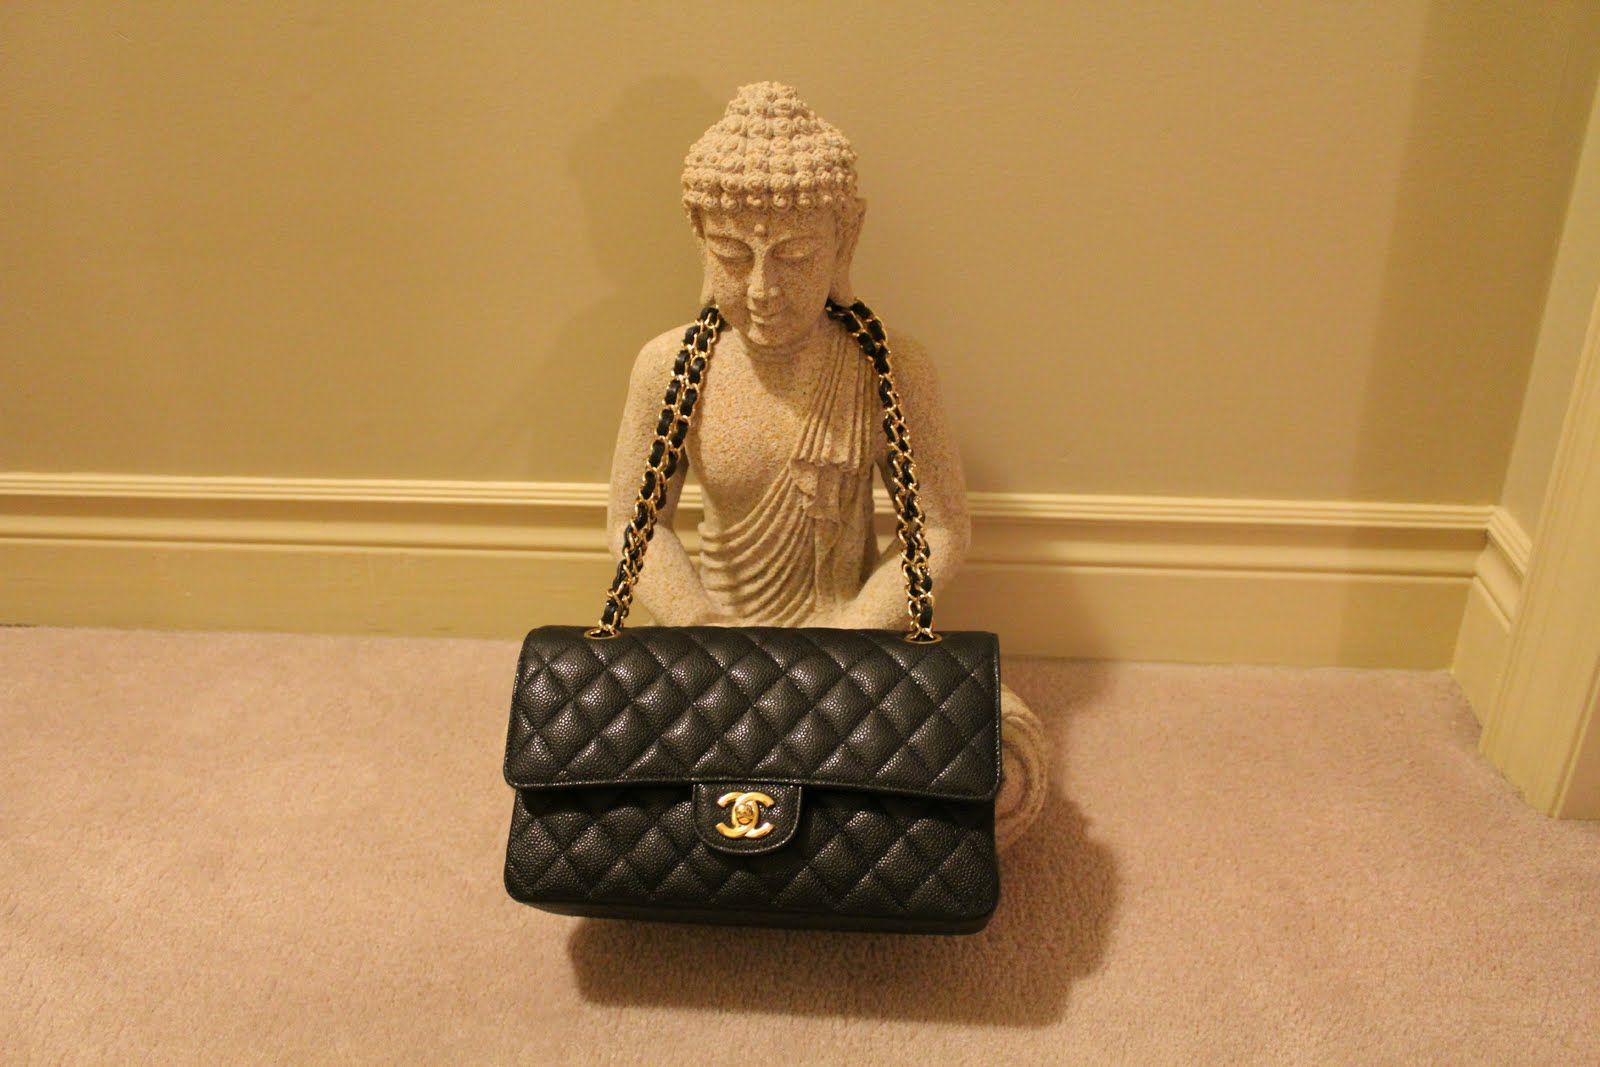 12929ffa5428 It's a small/medium double flap bag in caviar leather that was purchased  from the Chanel store at Saks Fifth Avenue.